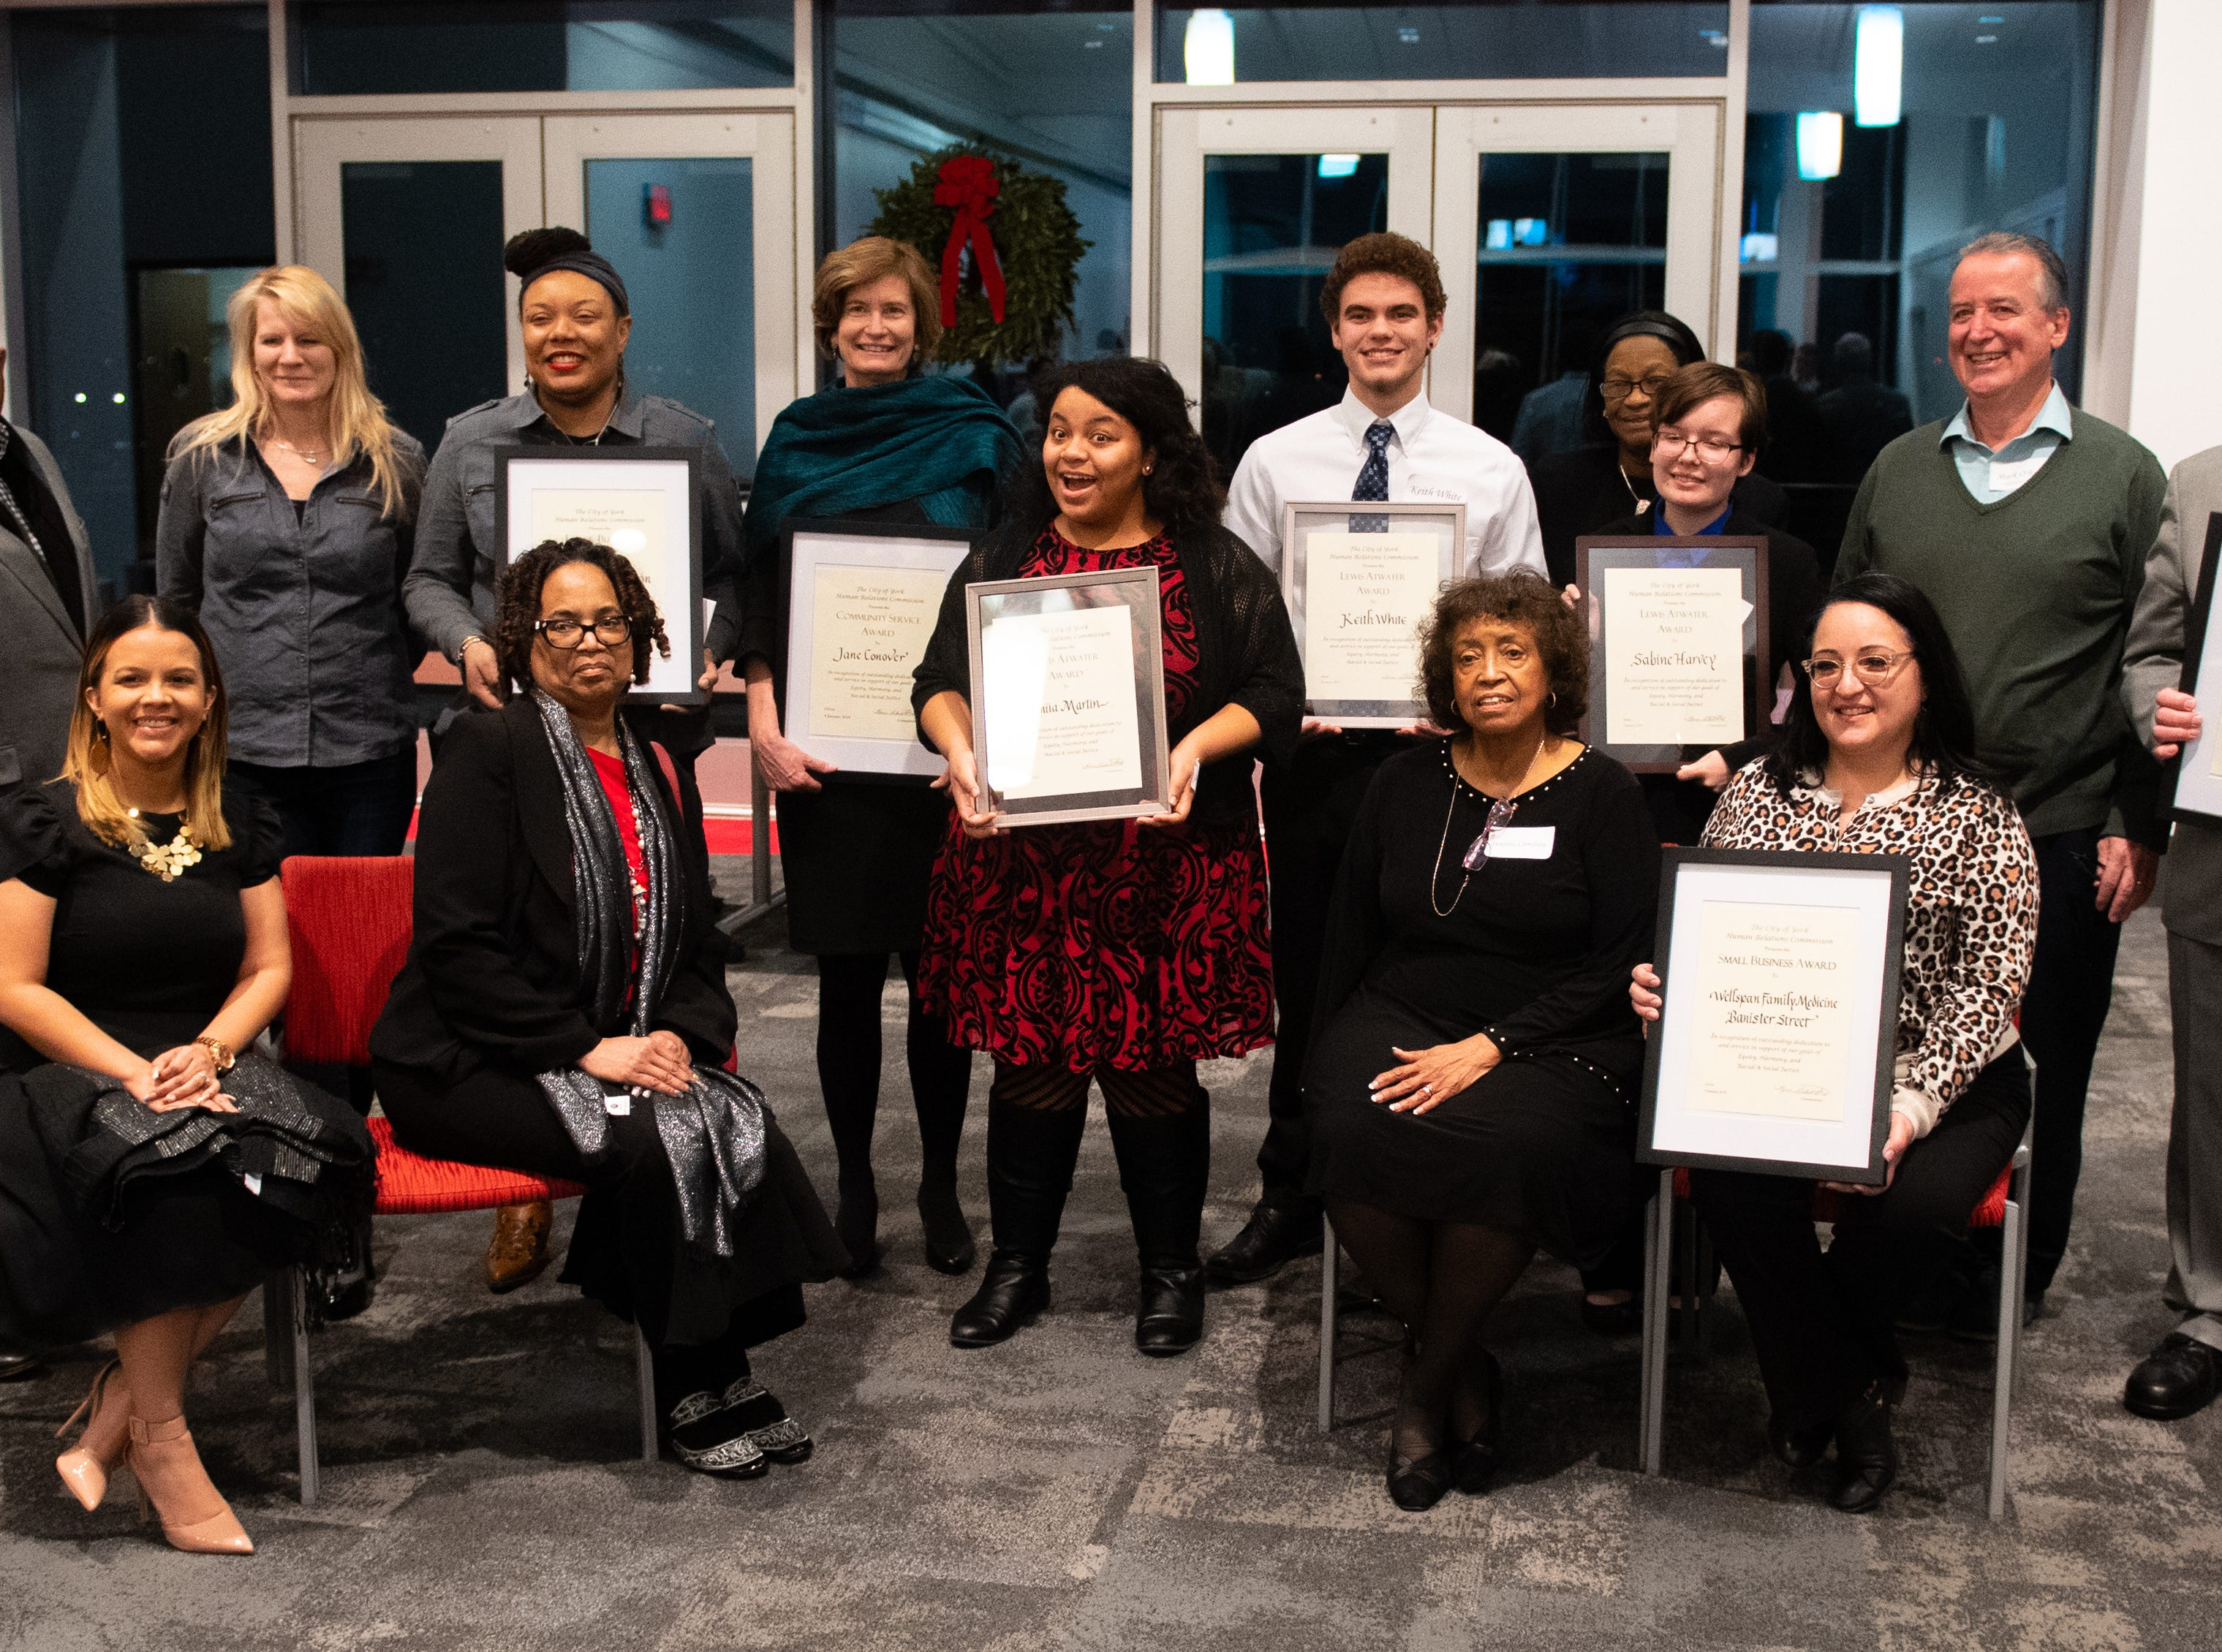 All of the Diversity award winners pose for one last picture before heading home for the night, January 9, 2019.